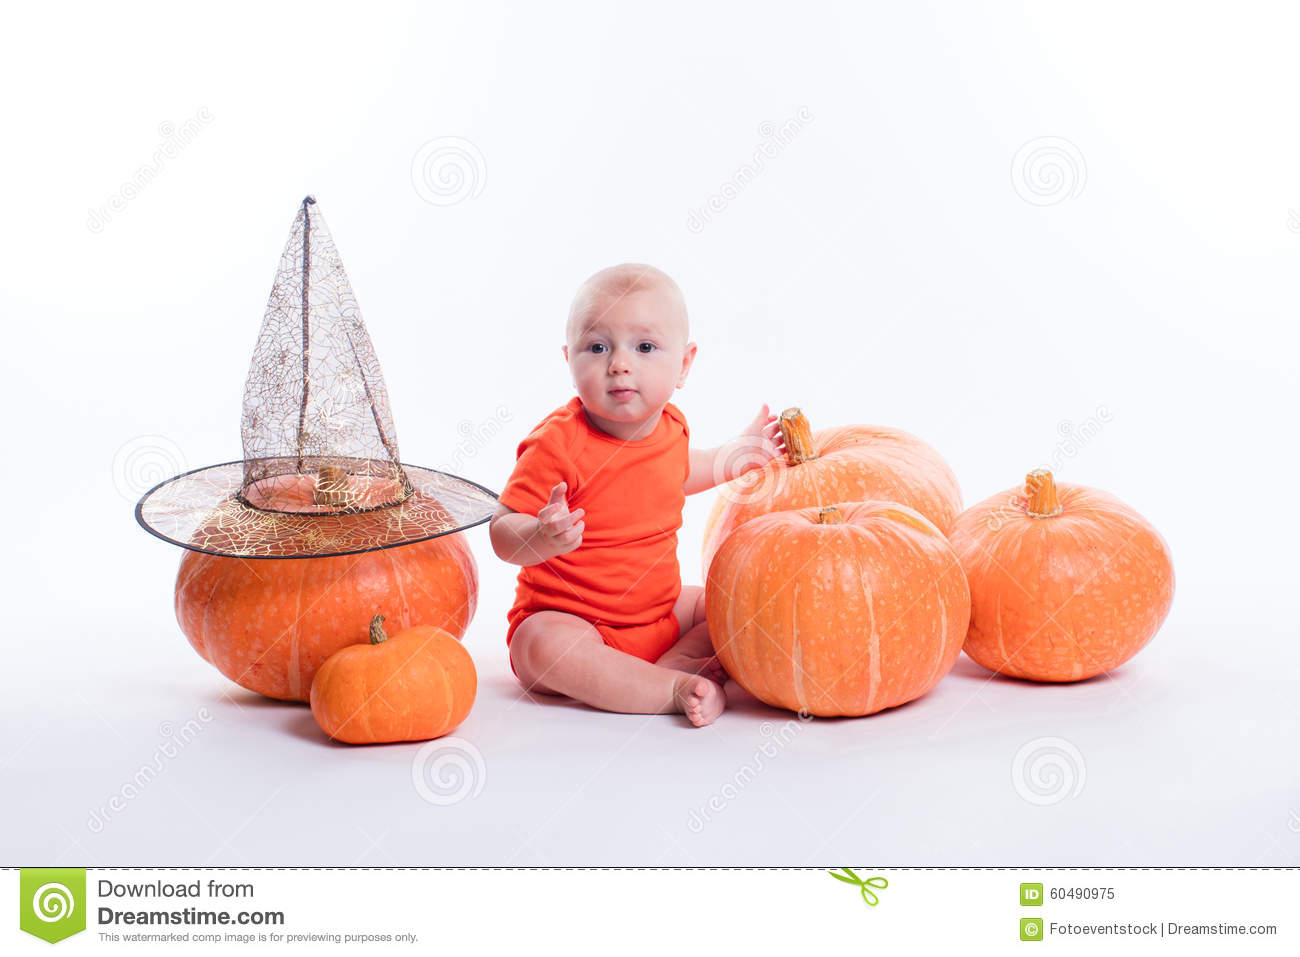 Baby in orange t-shirt sitting on a white background surrounded